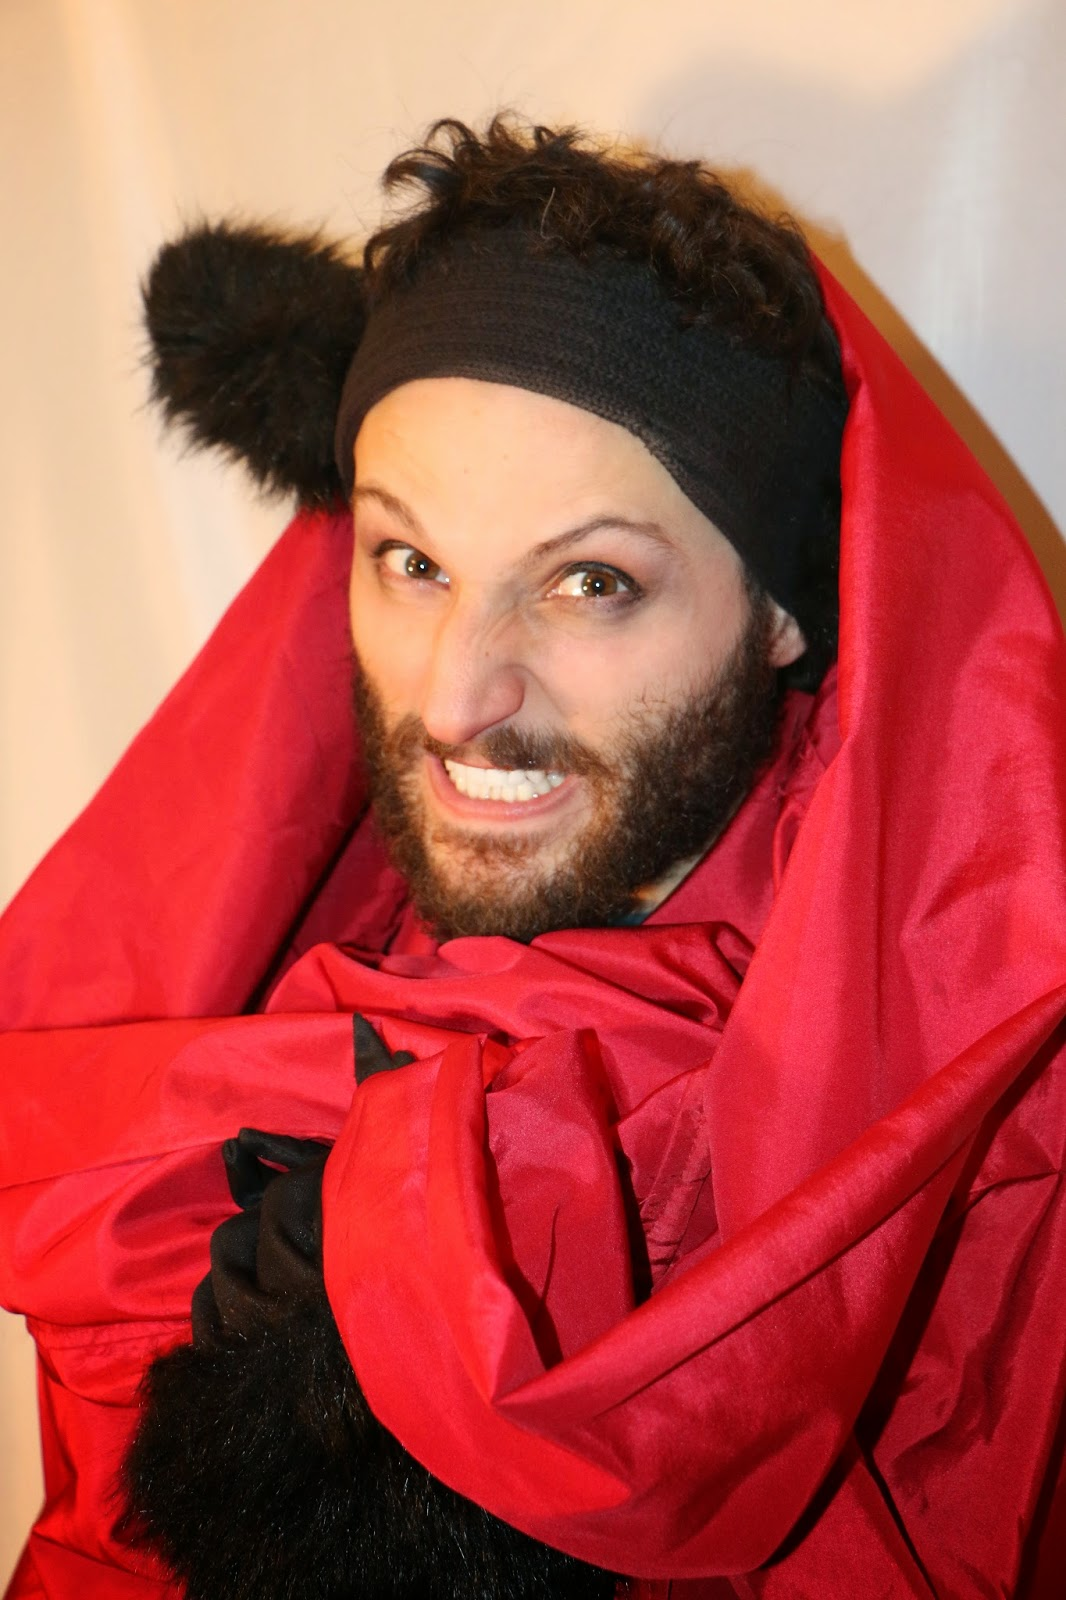 THE CHARMING BIG BAD WOLF-1I-RED RIDING HOOD 2015--GLEAMS THEATER--IRA SOKOLOVA- PHOTO: SHAHRZAD GHAFFARI WESTMOUNT, QUEBEC, CANADA